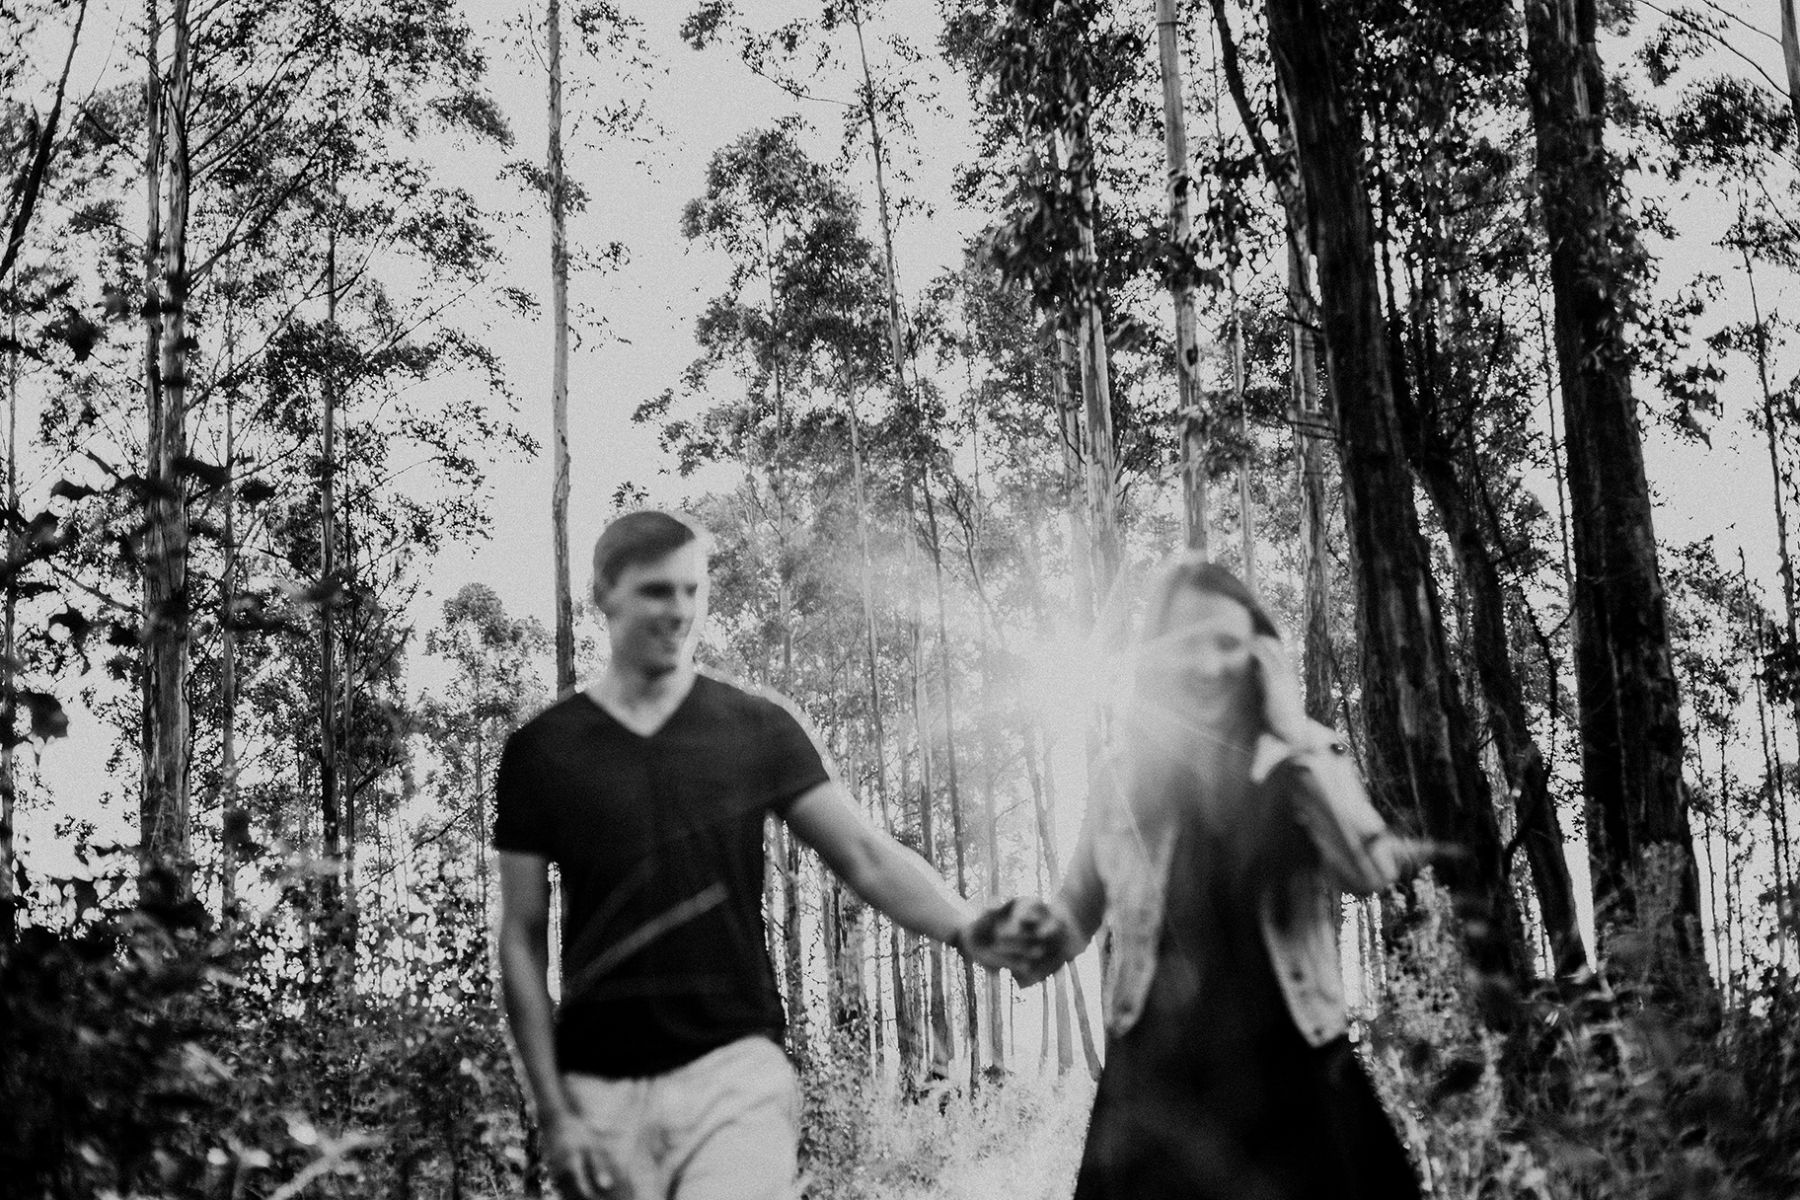 artistic and natural image of happy couple walking hand in hand in forest under late afternoon sunlight